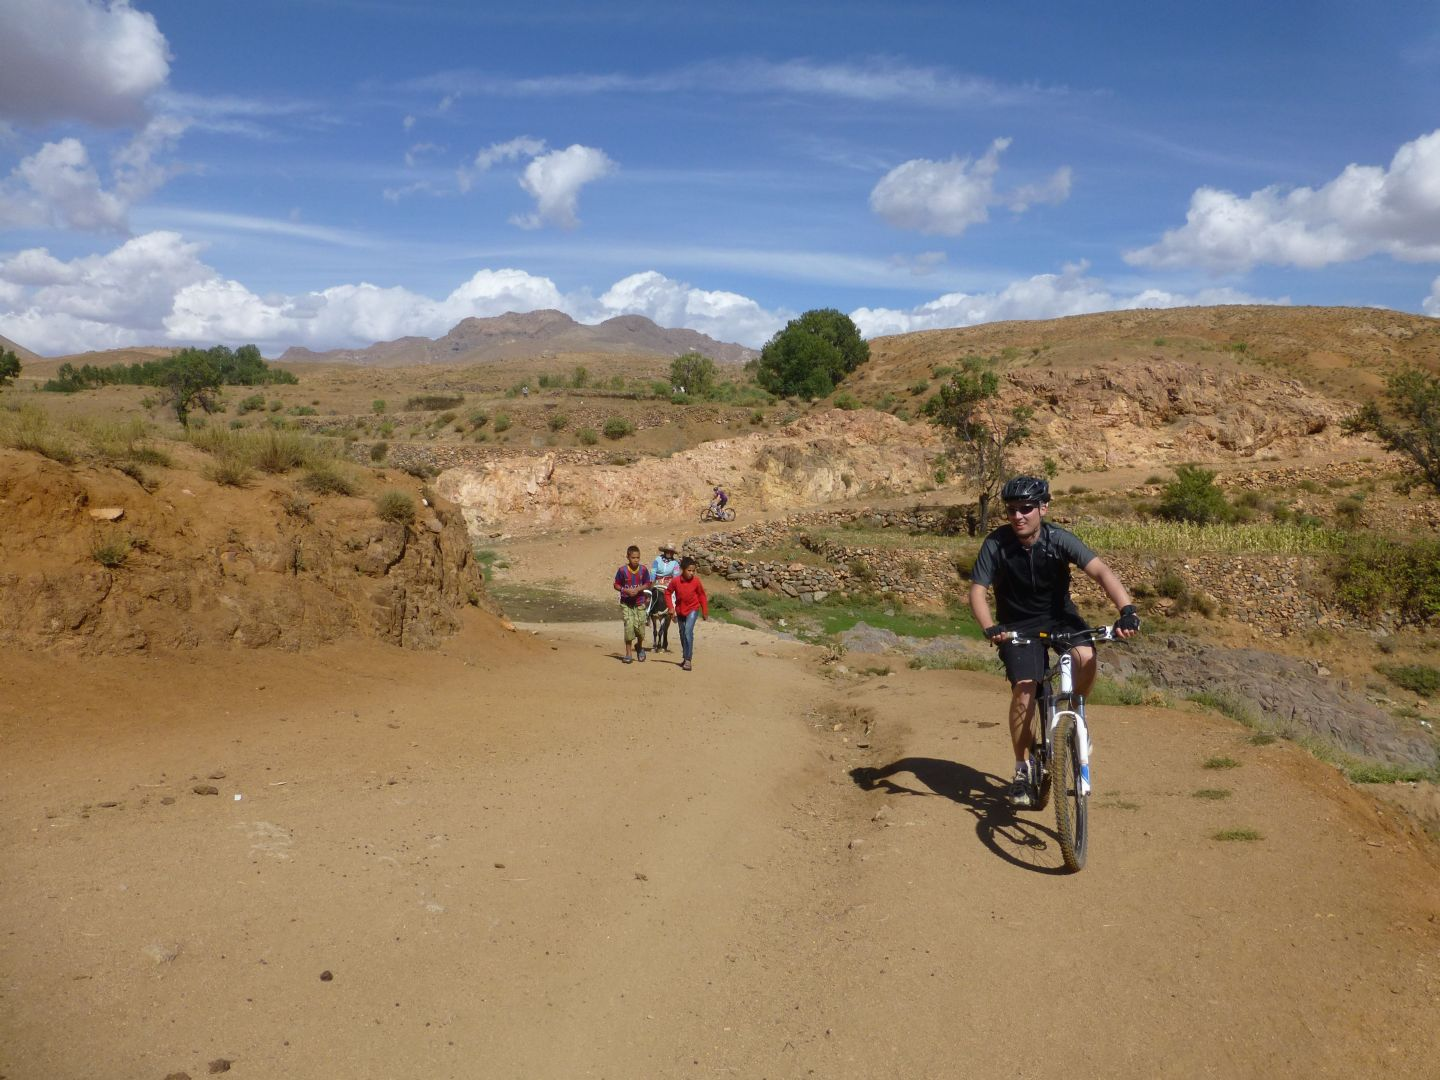 morocco traverse 1 (2).jpg - Morocco - High Atlas Traverse - Guided Mountain Bike Holiday - Mountain Biking